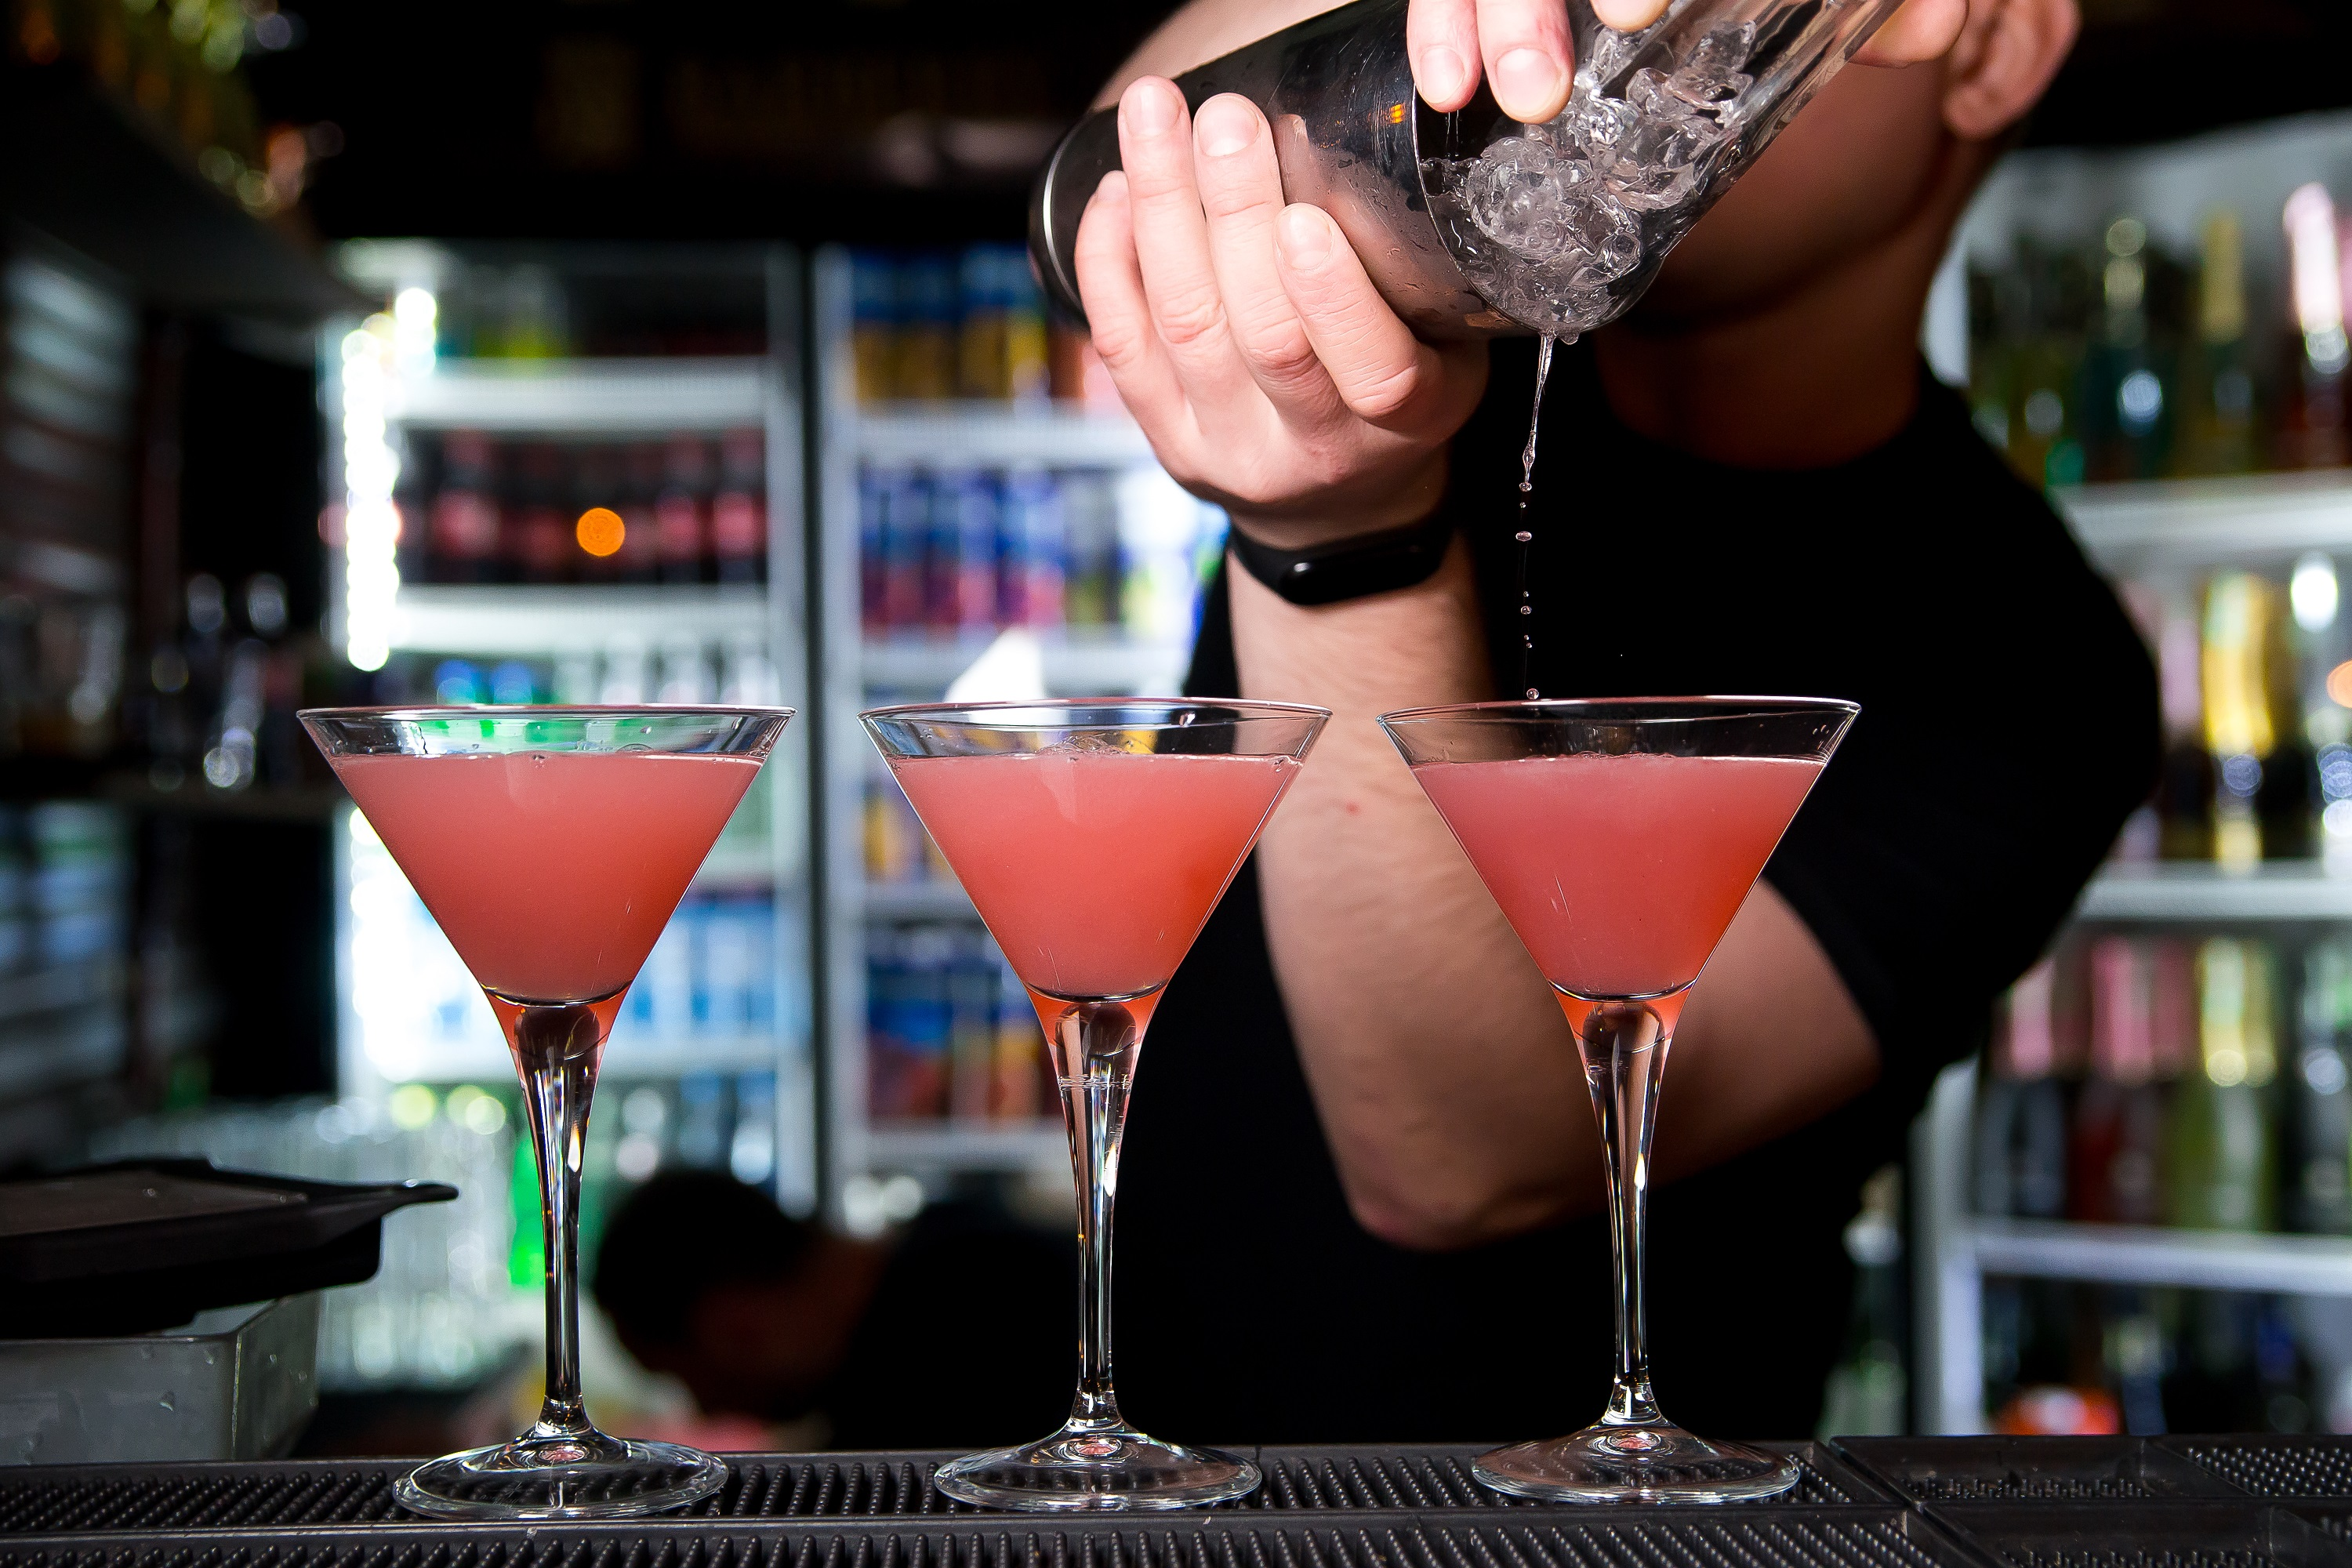 Bartender pouring 3 pink cosmo drinks